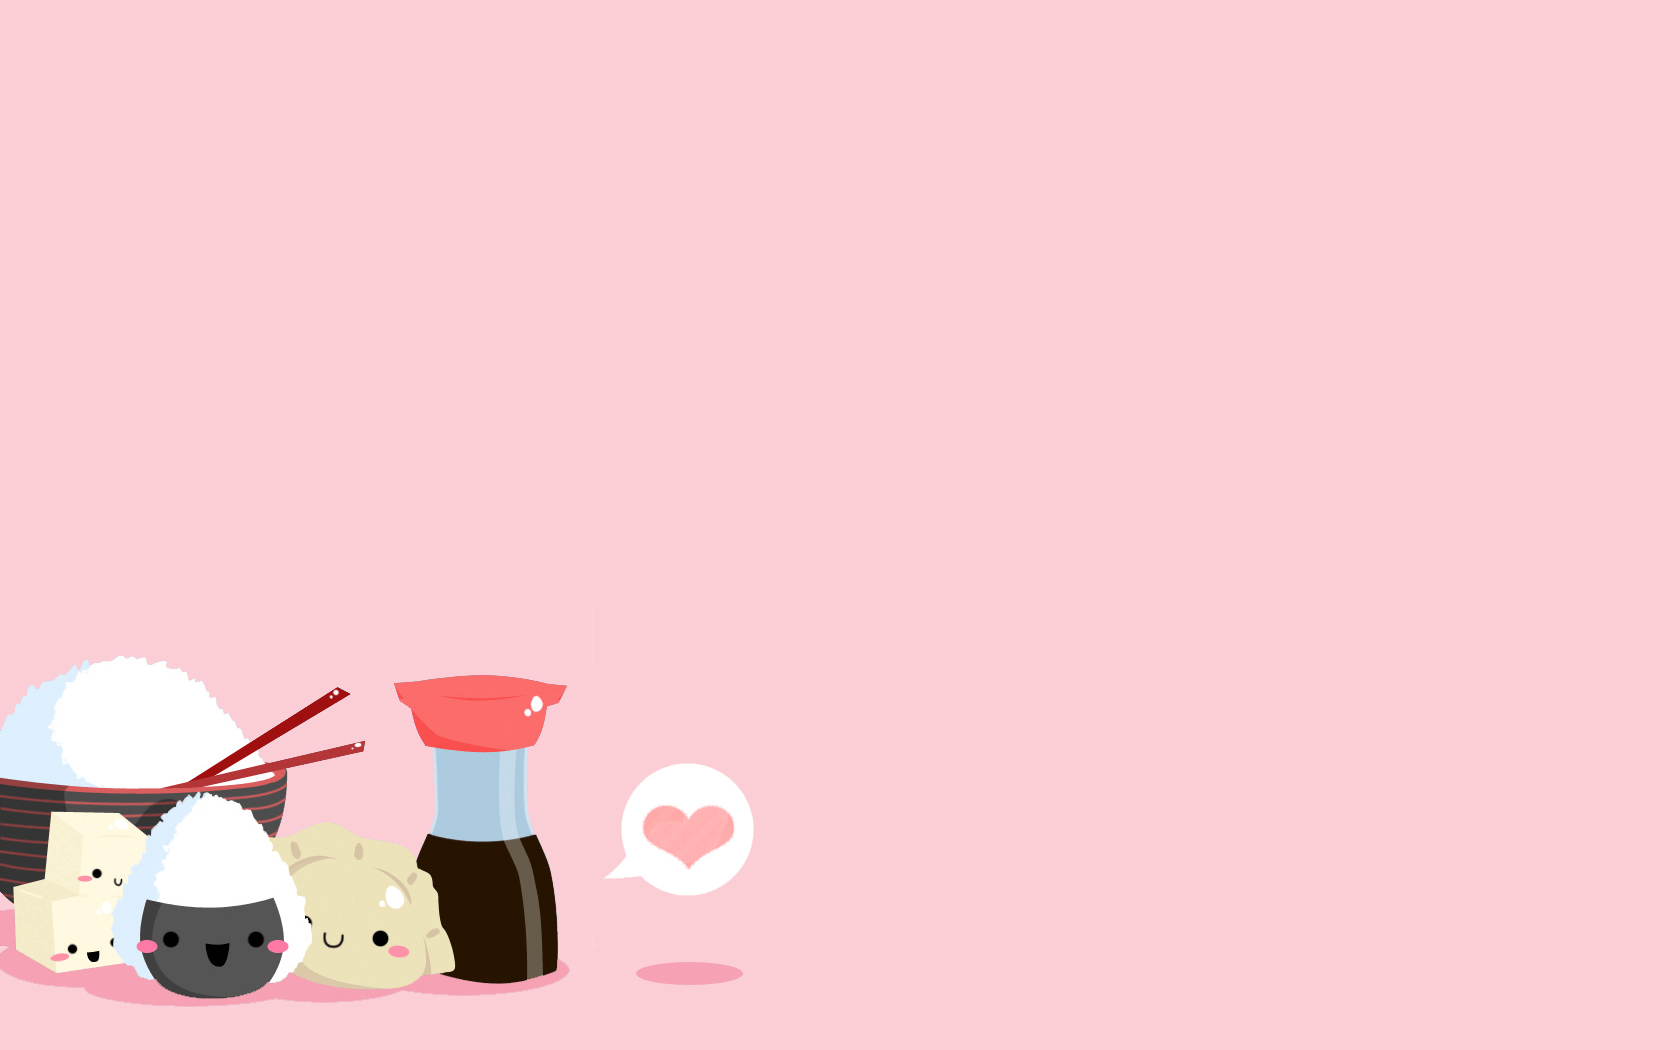 Kawaii Background – Support us by sharing the content, upvoting wallpapers on the page or sending your own background pictures.